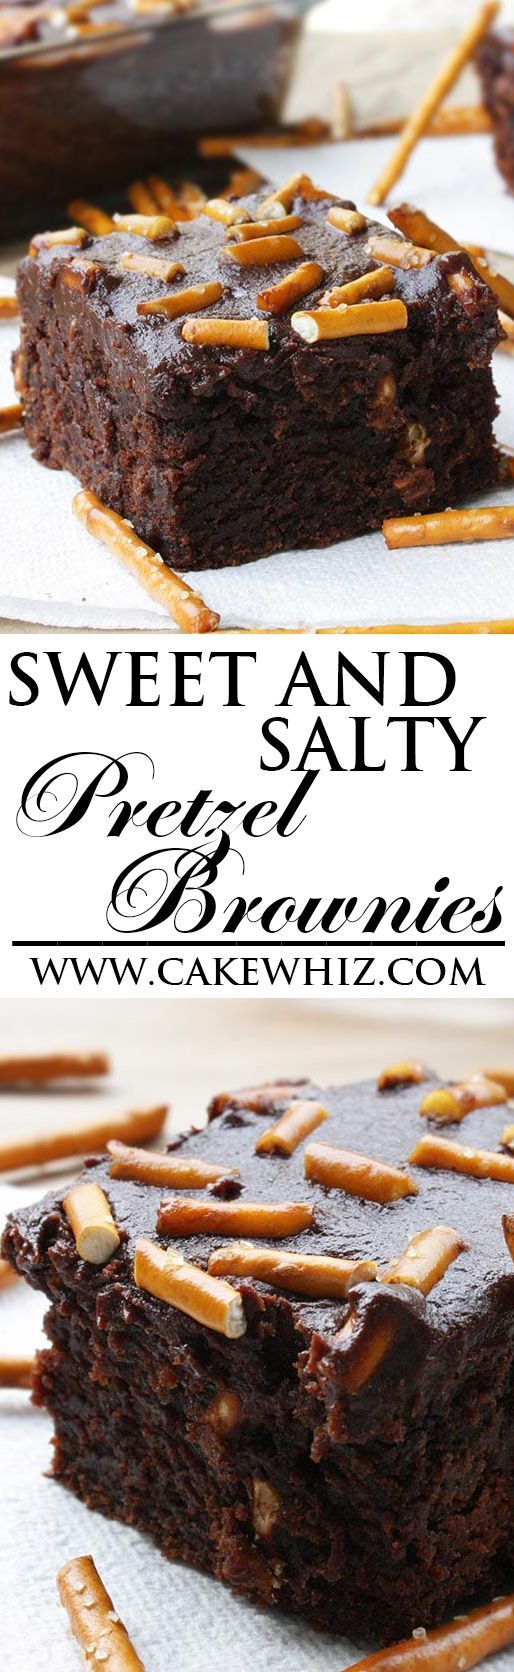 These sweet and salty PRETZEL BROWNIES are really fudgy are topped off with rich chocolate ganache. They are really easy to make and it's the perfect recipe for chocoholics! From cakewhiz.com